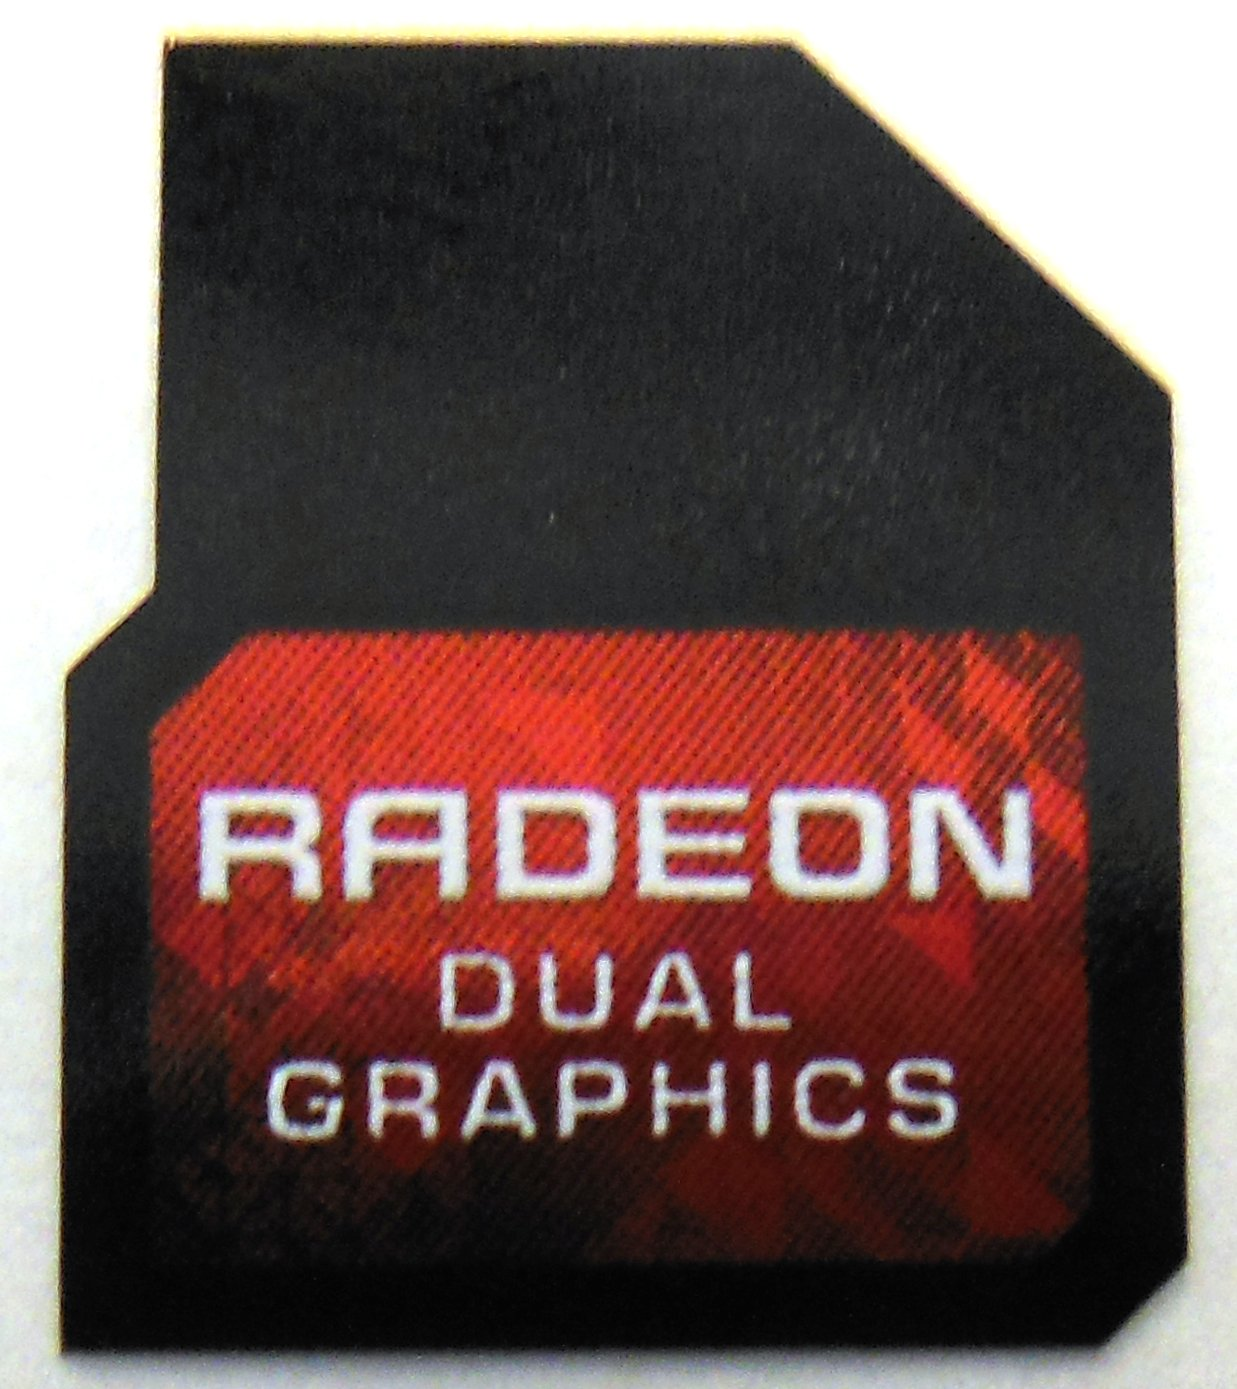 Original AMD Radeon Dual Graphics Sticker 13 x 17mm [777]